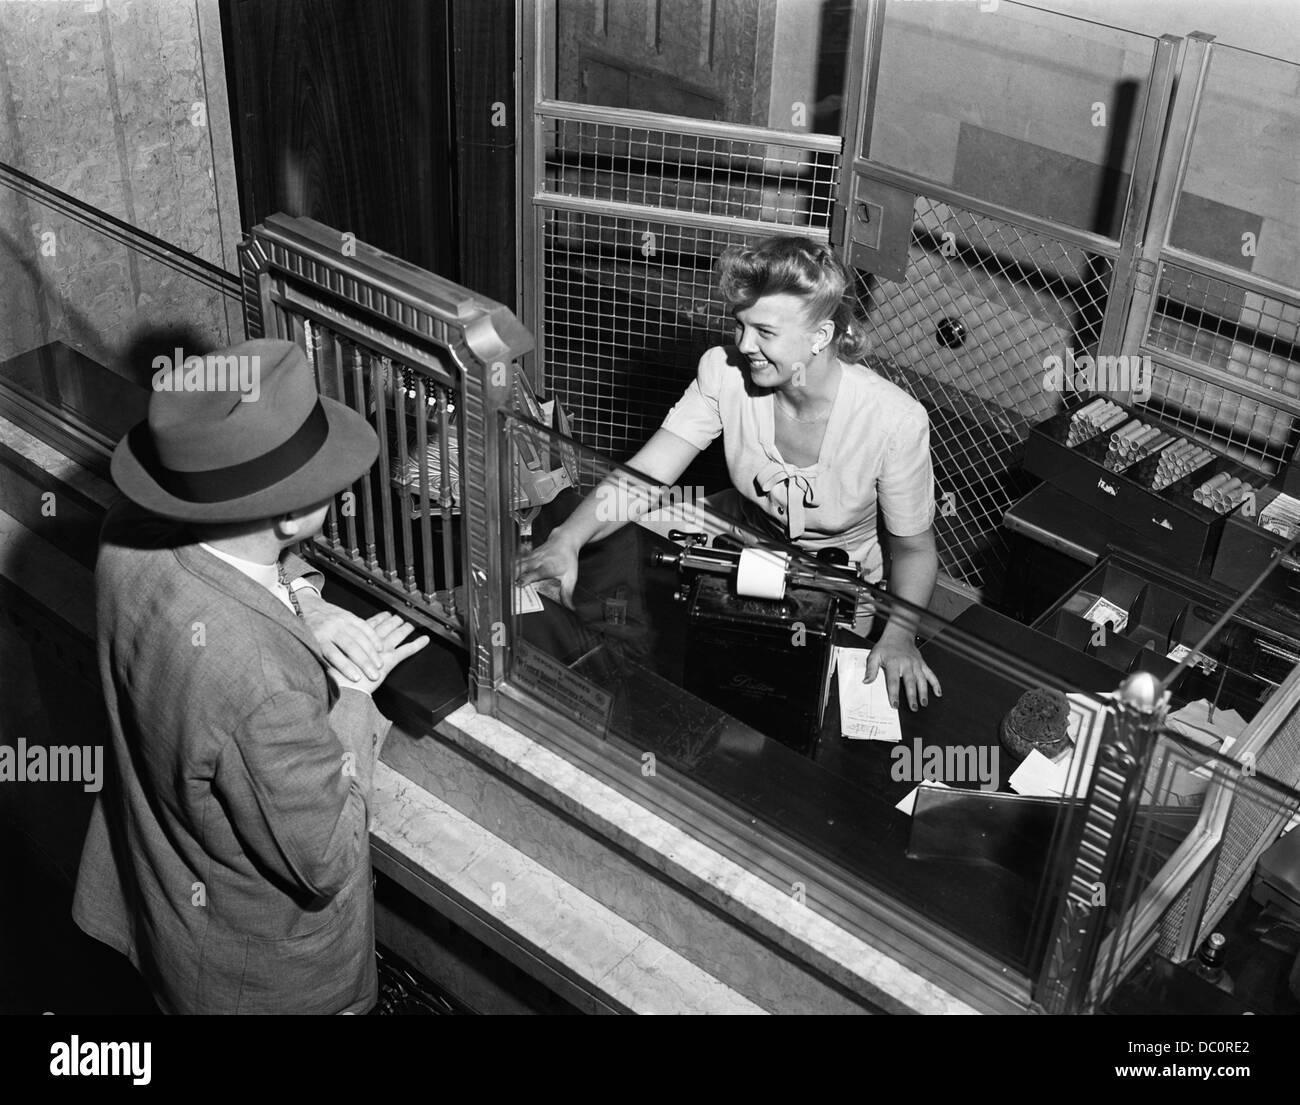 mid adult cashier black and white stock photos images alamy 1940s w bank teller behind cage serving male customer stock image